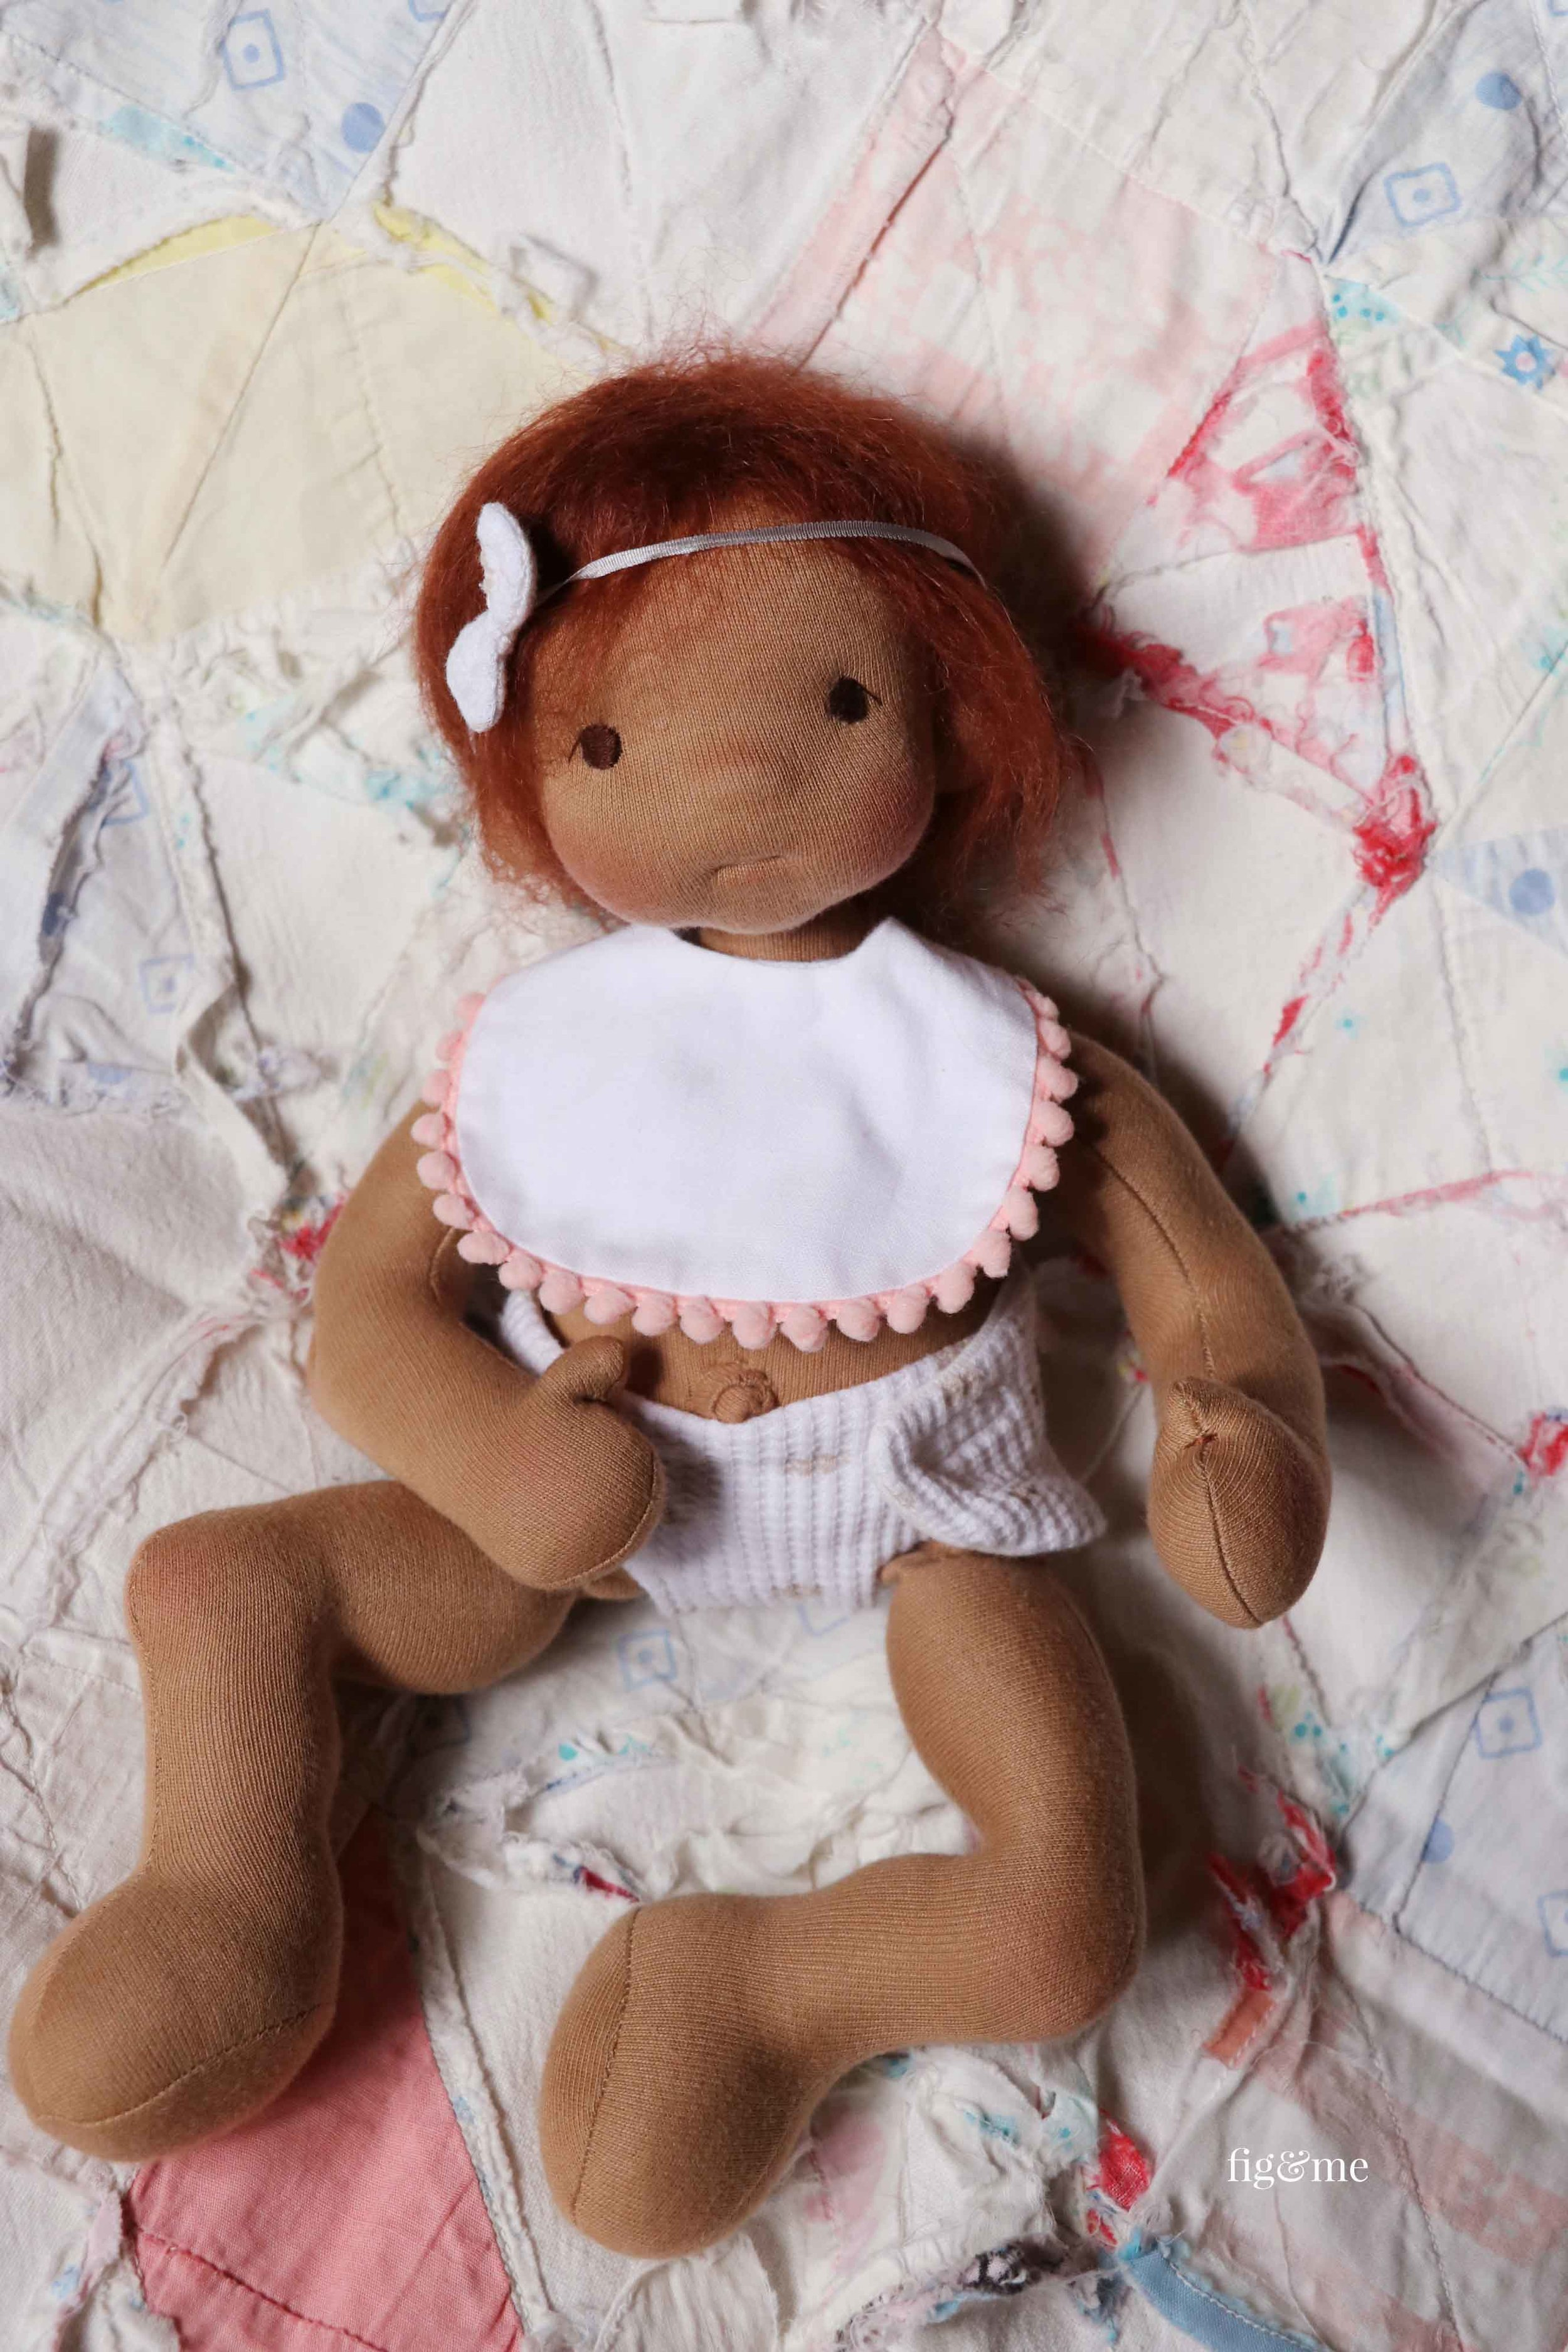 Take the Baby Fig pattern and make a lovely, weighted with glass beads, baby-style doll. Pattern available from Fig and Me. #dollmaking #makingdolls These clothes included in the pattern.